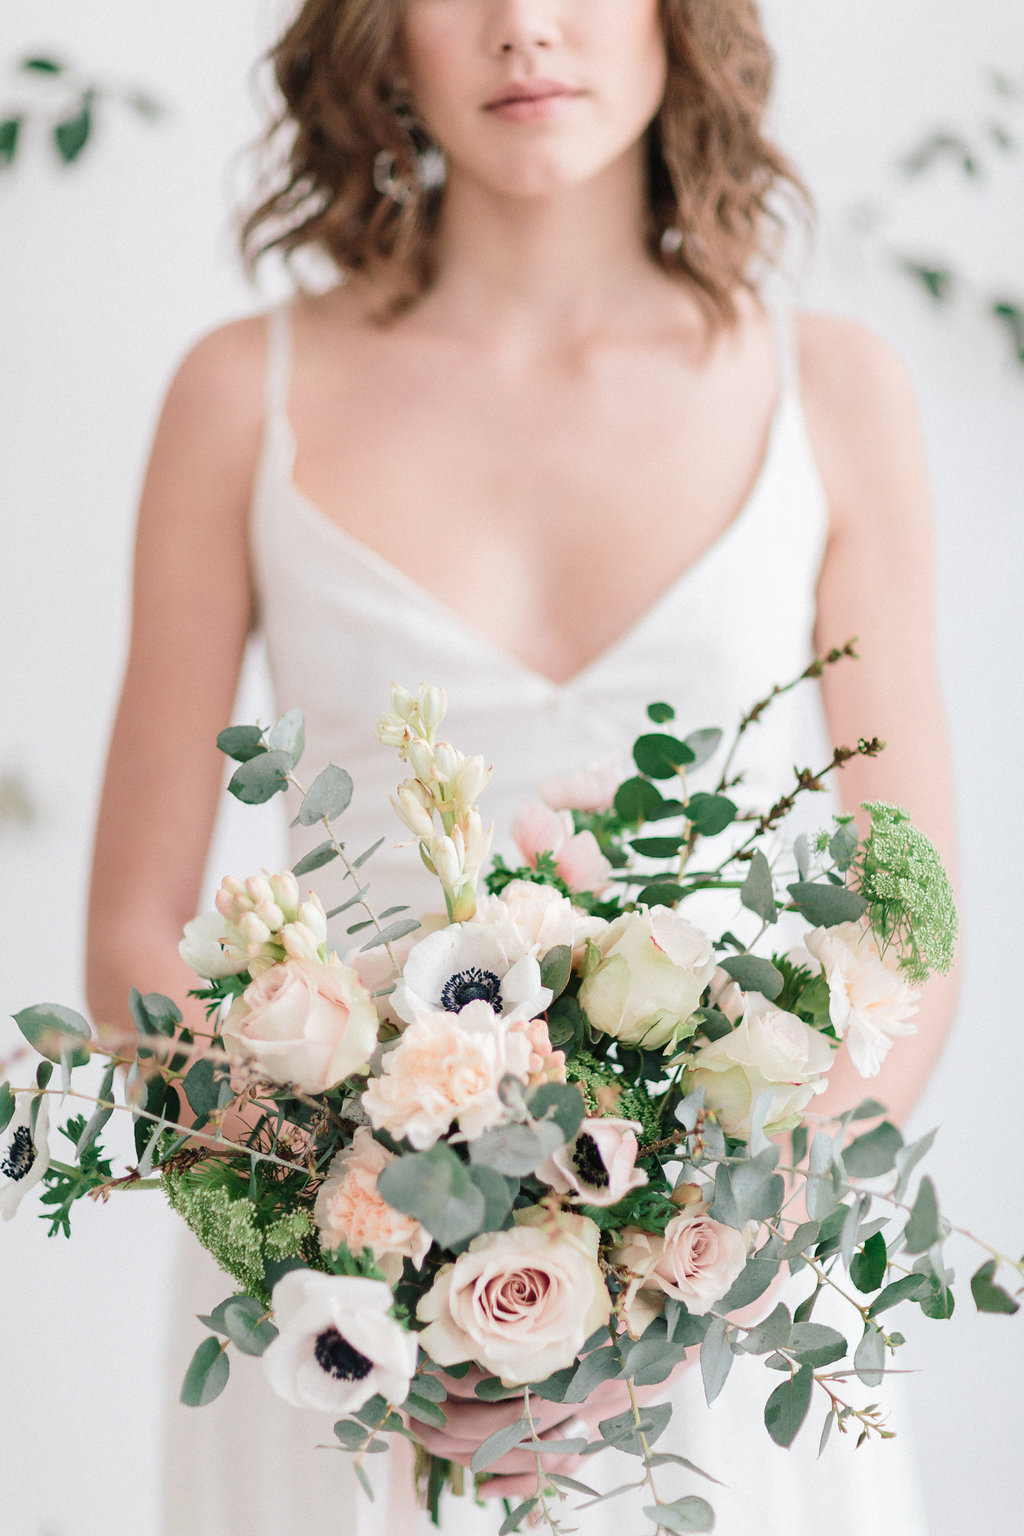 romantic anemone bouquets - photo by Julien Bonjour Photographe http://ruffledblog.com/airy-industrial-wedding-inspiration-for-spring